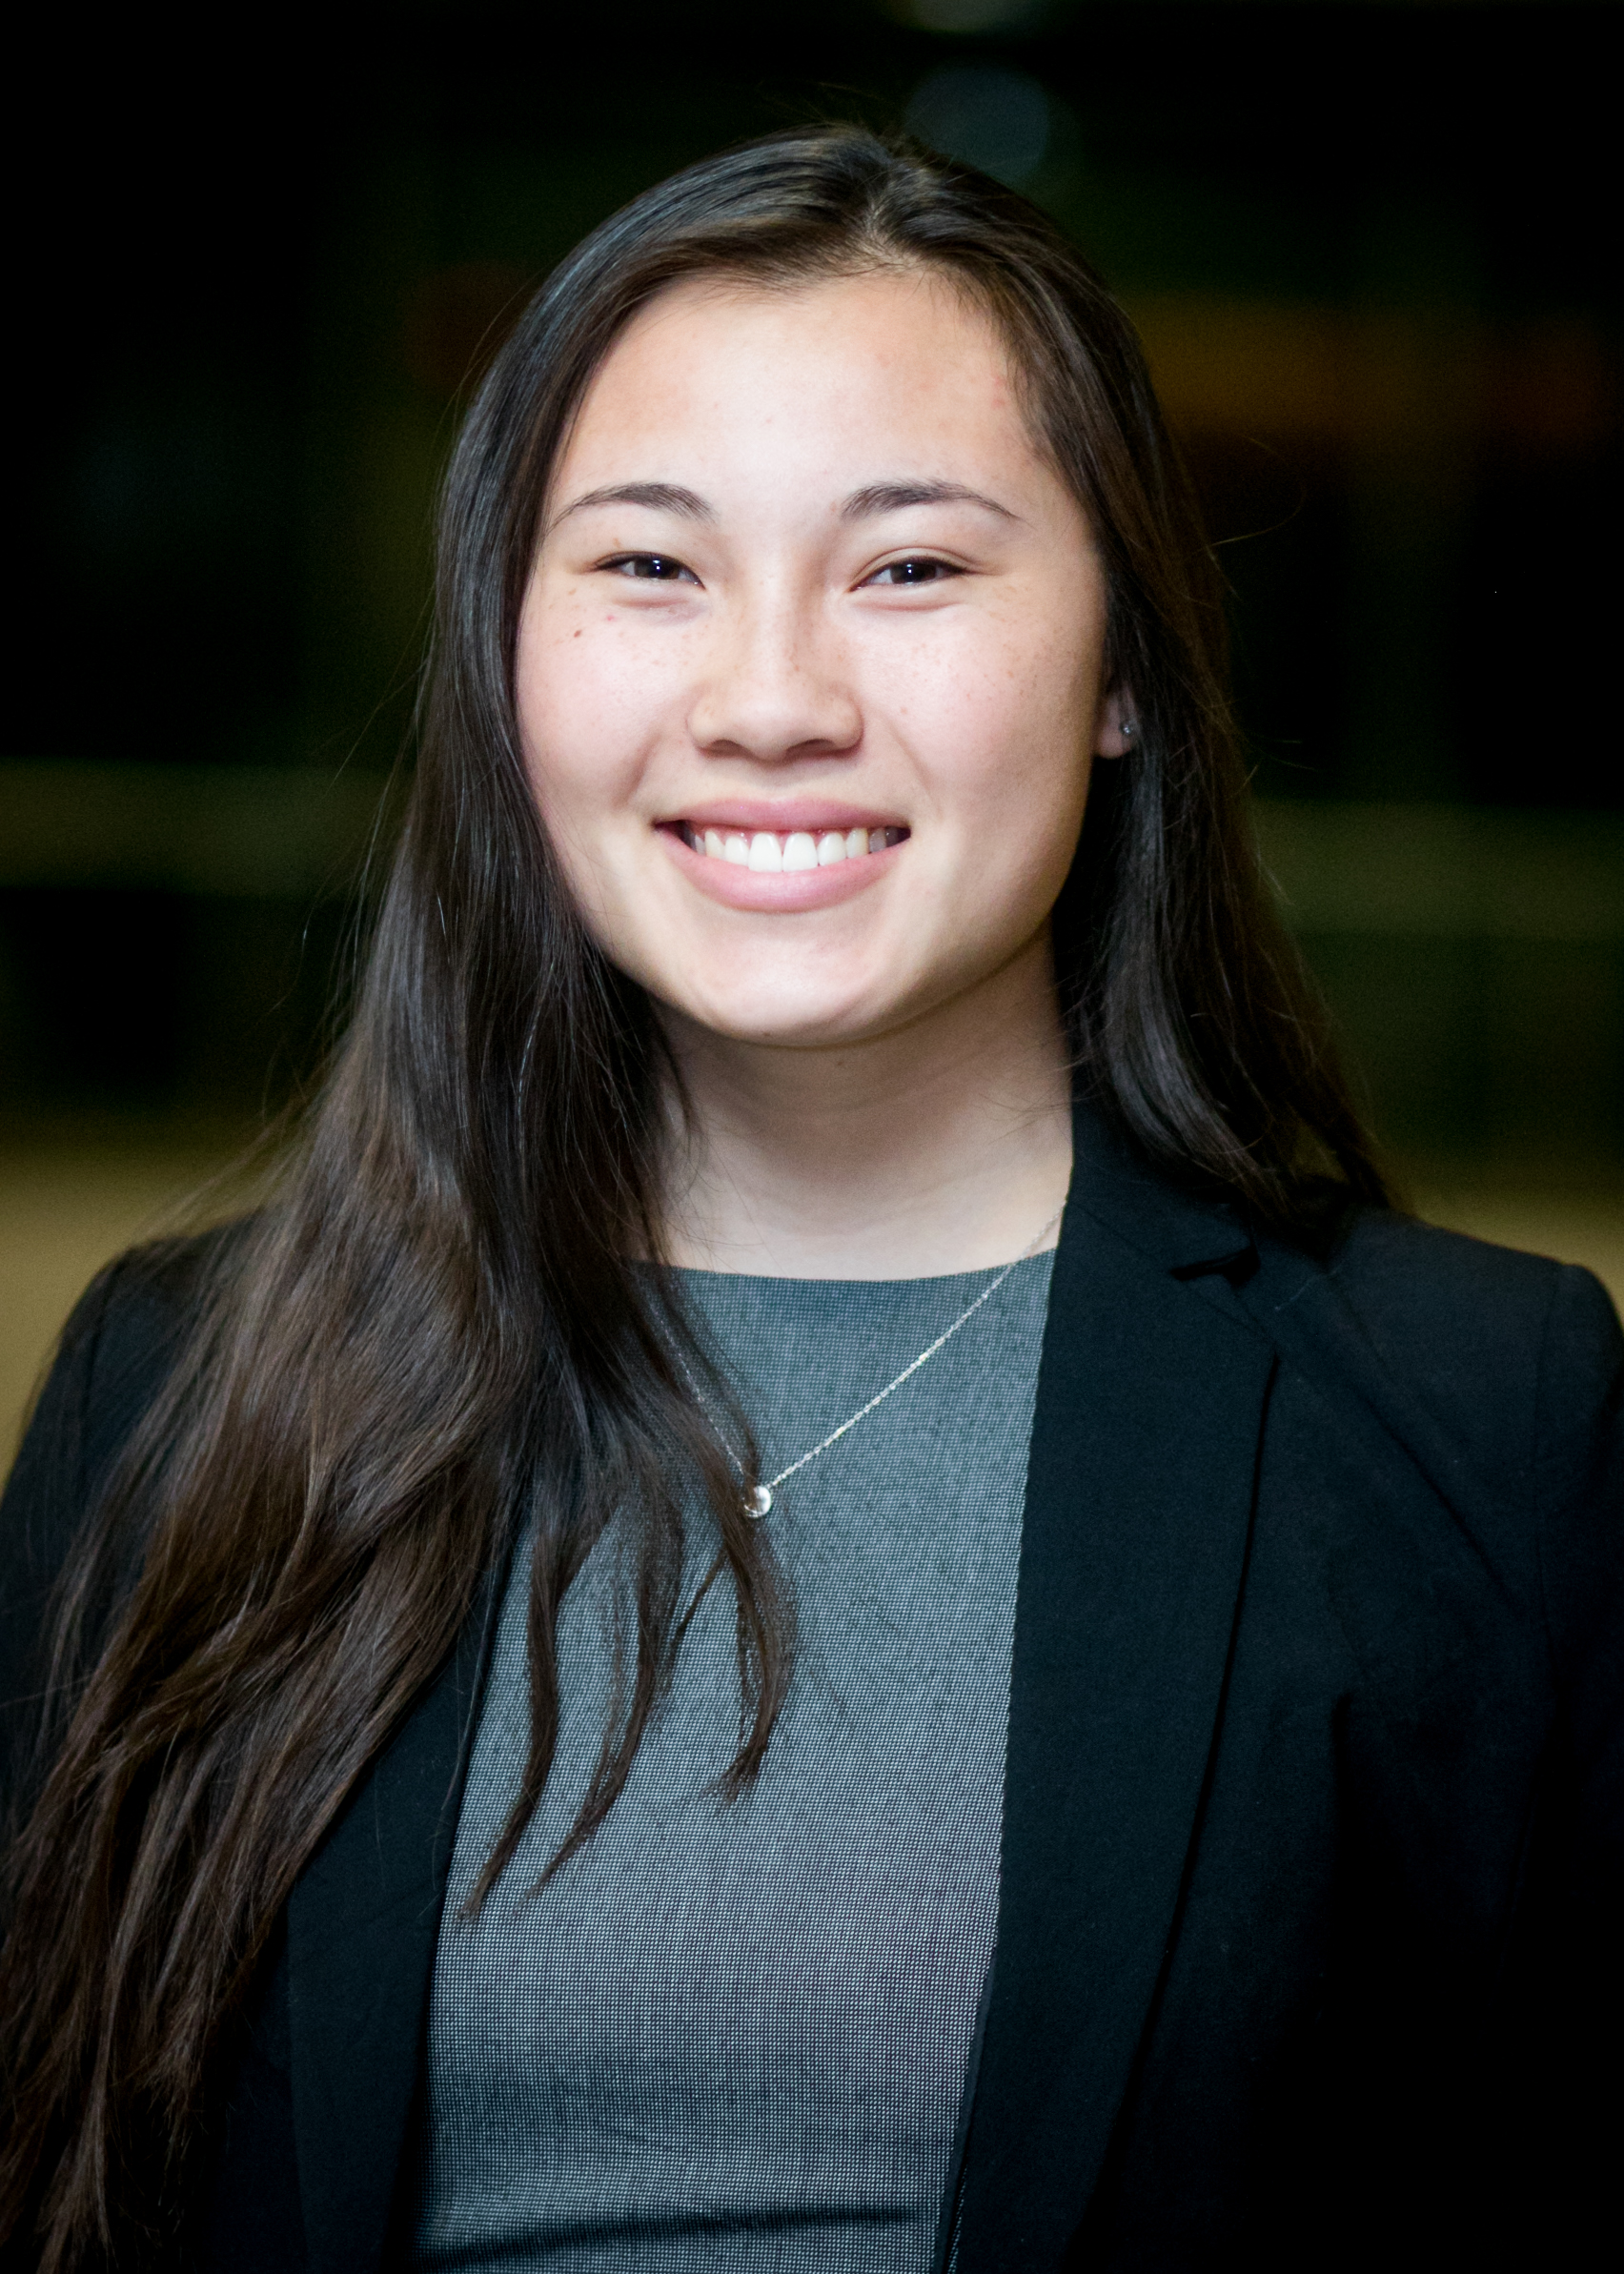 """VP OPERATIONS   Megan is a second-year International Business student minoring in Spanish and is excited to be the Vice President of Operations for the 2017-2018 academic year. Whether it is in sports or other academic activities, Megan has always enjoyed being involved in teams and is a natural leader and motivator. Her goal is to implement her knowledge and skills to aid delegates and other executive members and to ensure that they have another successful and enjoyable year. She believes that DECA is a very beneficial extracurricular that allows you to develop many important skills, not only in business but in any field. She is looking forward to working and learning with the Carleton DECA team.     """"Some people dream of success, while other people get up every morning and make it happen""""    -Wayne Huizenga"""